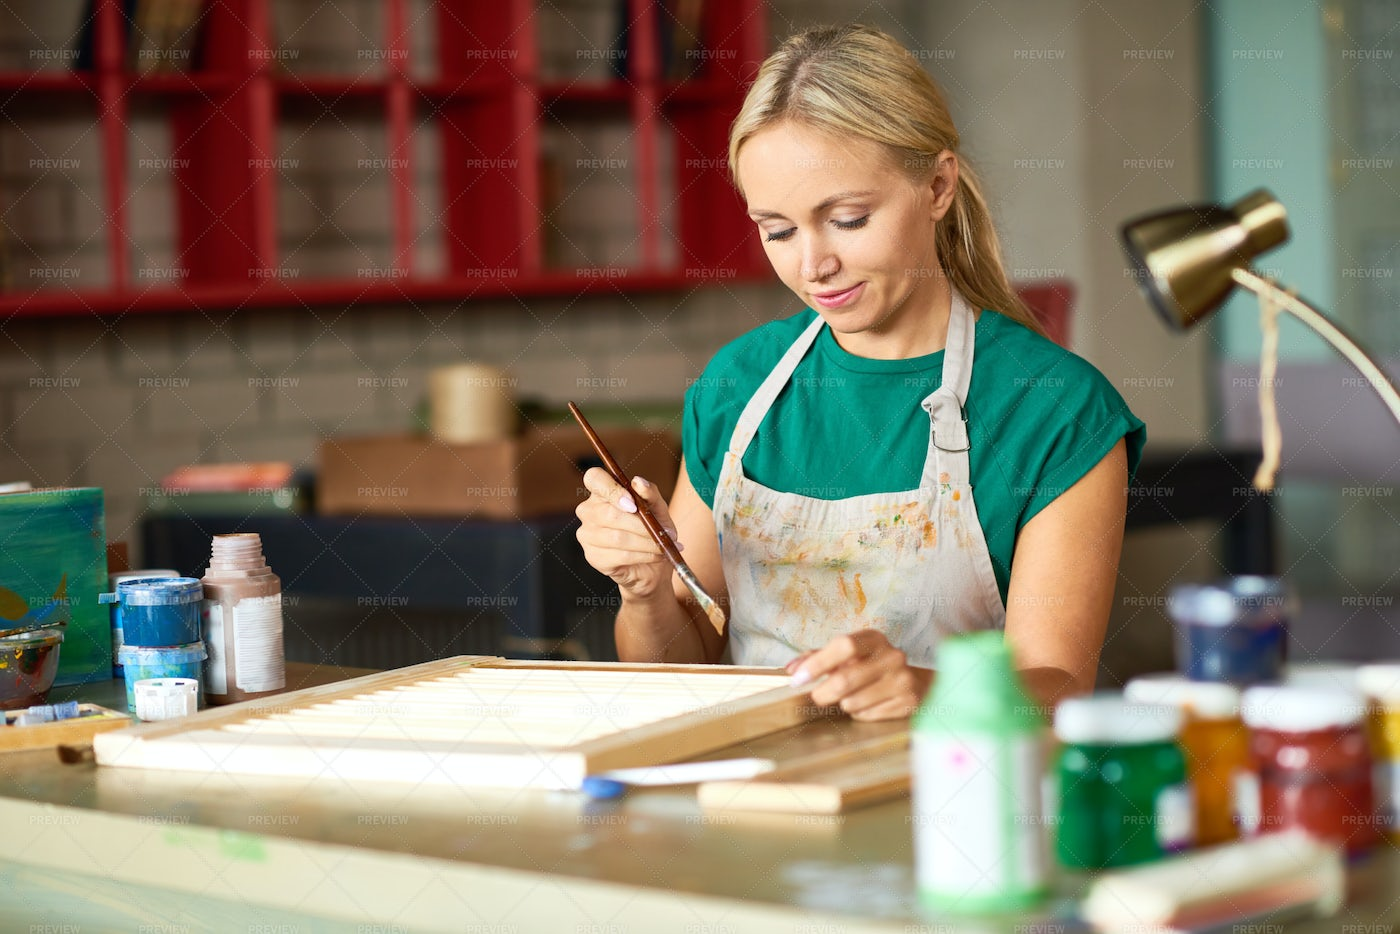 Young Woman Painting DIY Project: Stock Photos